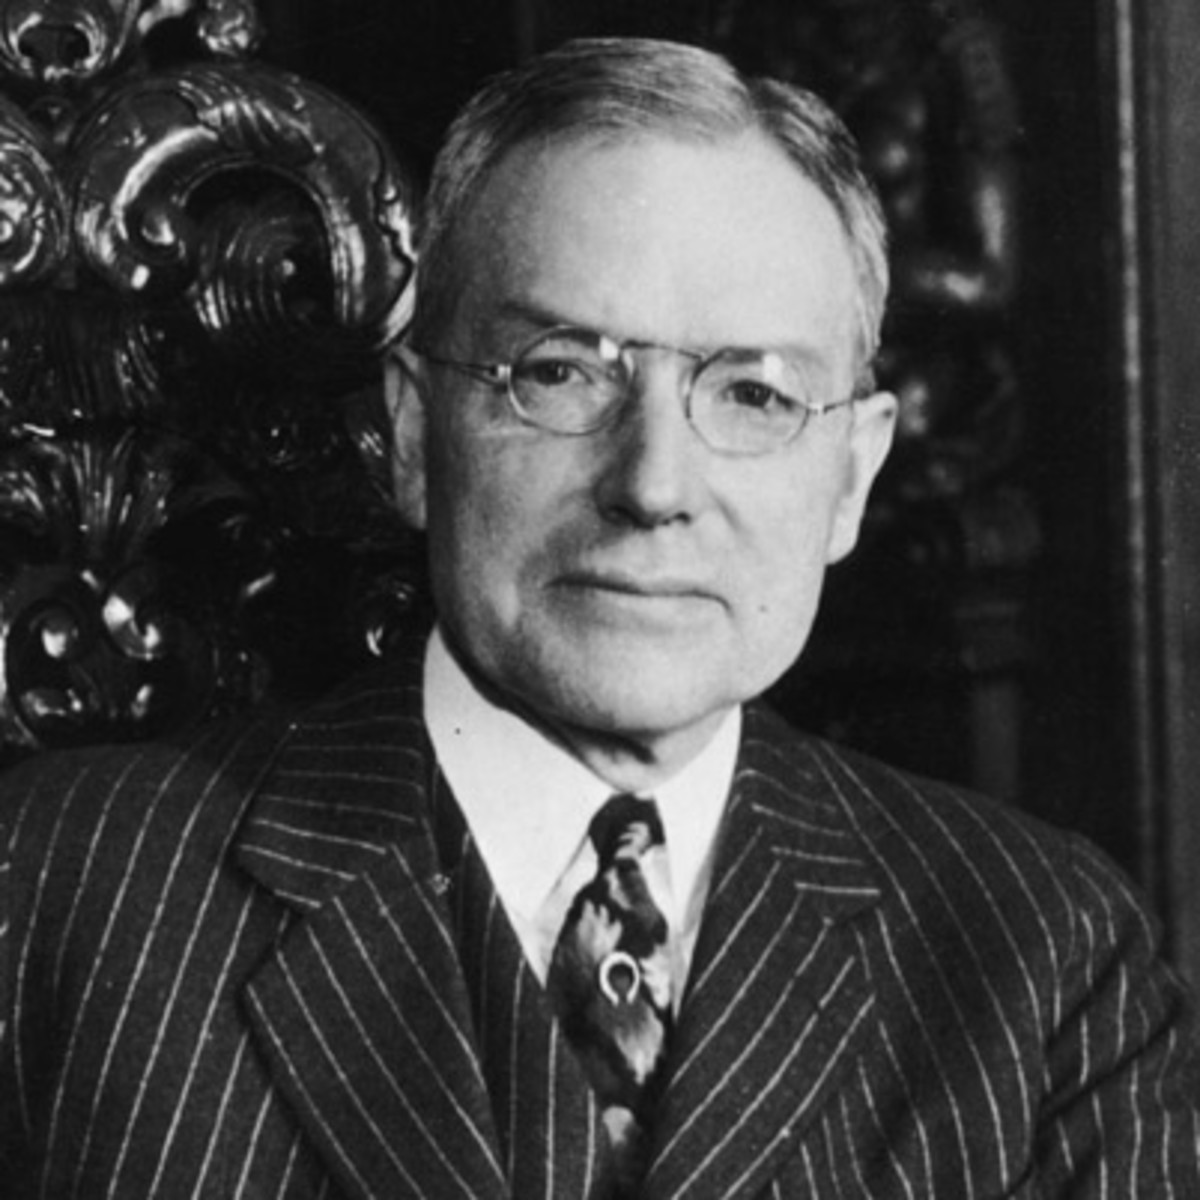 a biography og john davison rockefeller a famous businessman Biography, oil refinery, oil company - john rockefeller: american business mogul my account preview john davison rockefeller was born on july 8th.